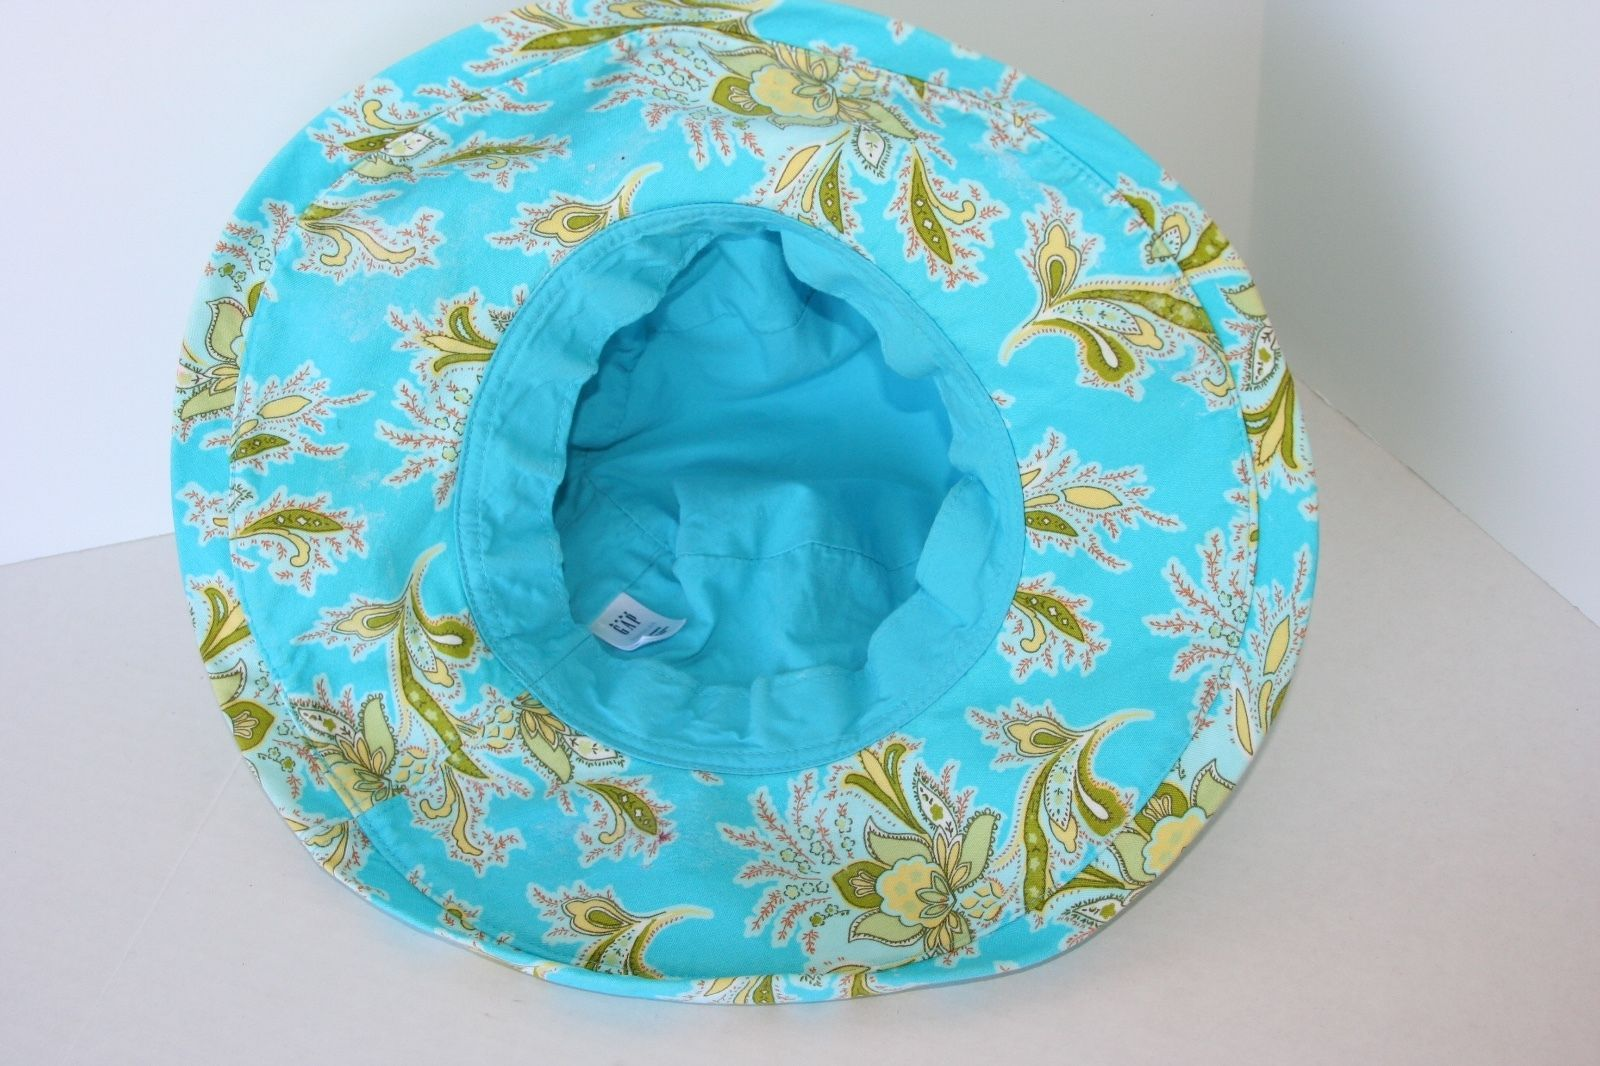 baby GAP Turquoise Sun Hat Olive Green Floral Toddler 4-5 years 74a75d39263c